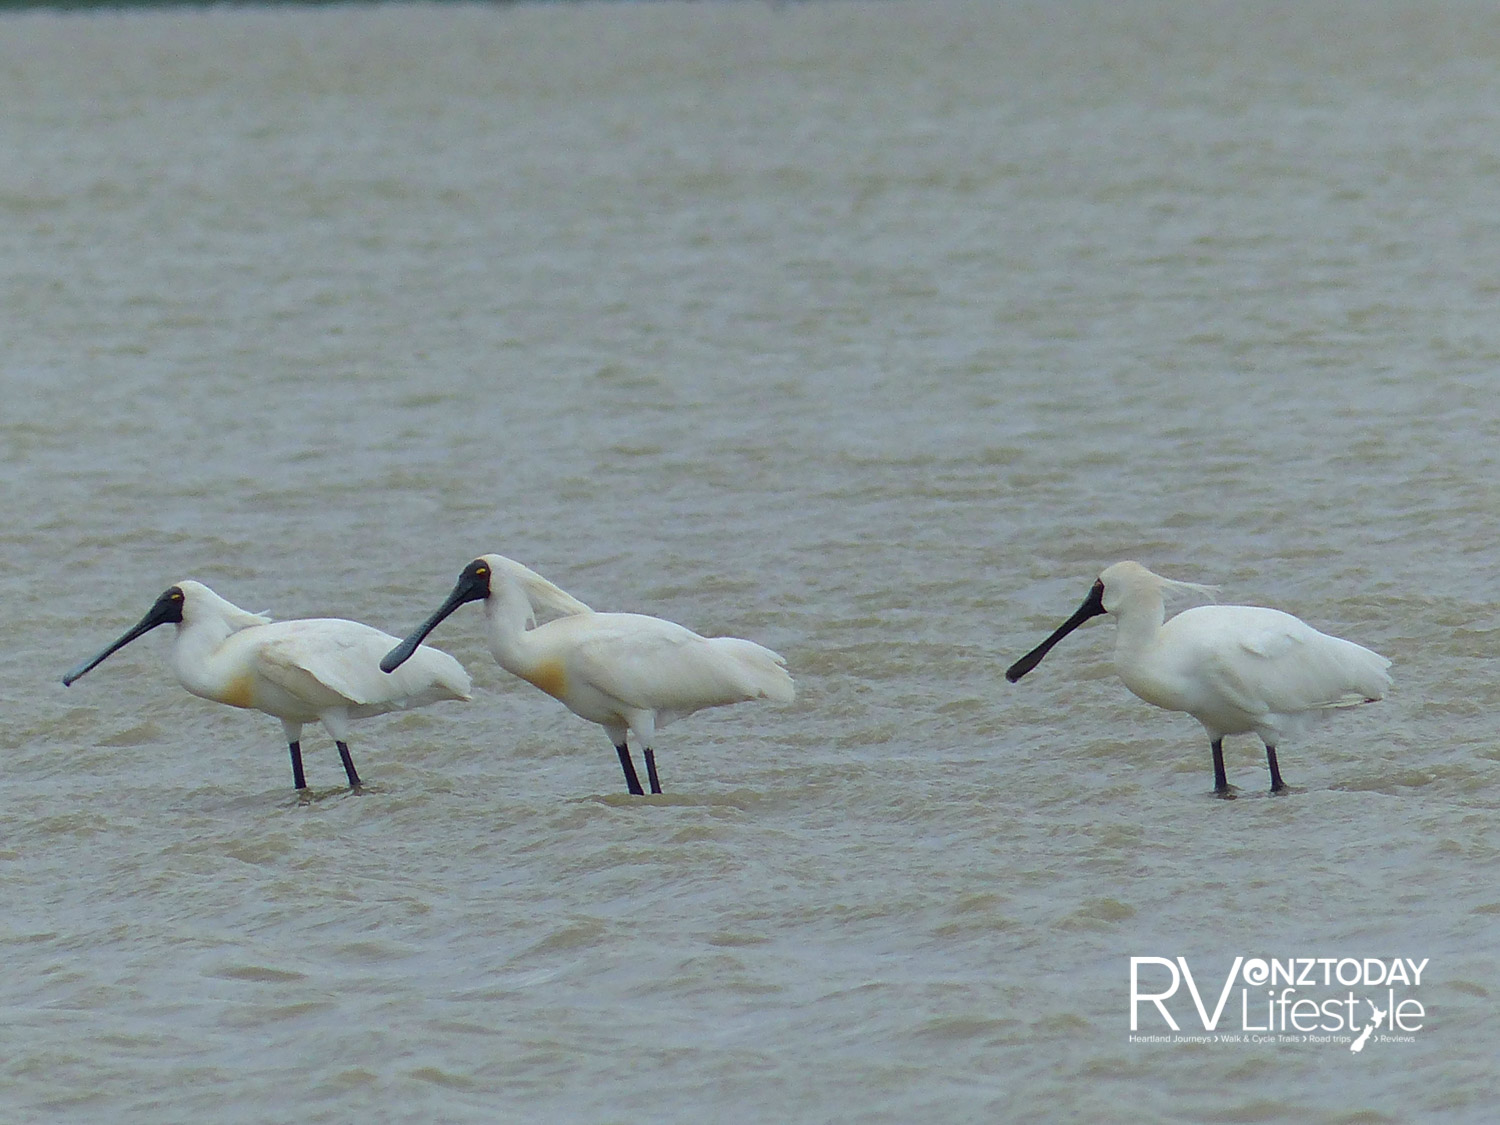 Royal spoonbills wading in the shallows